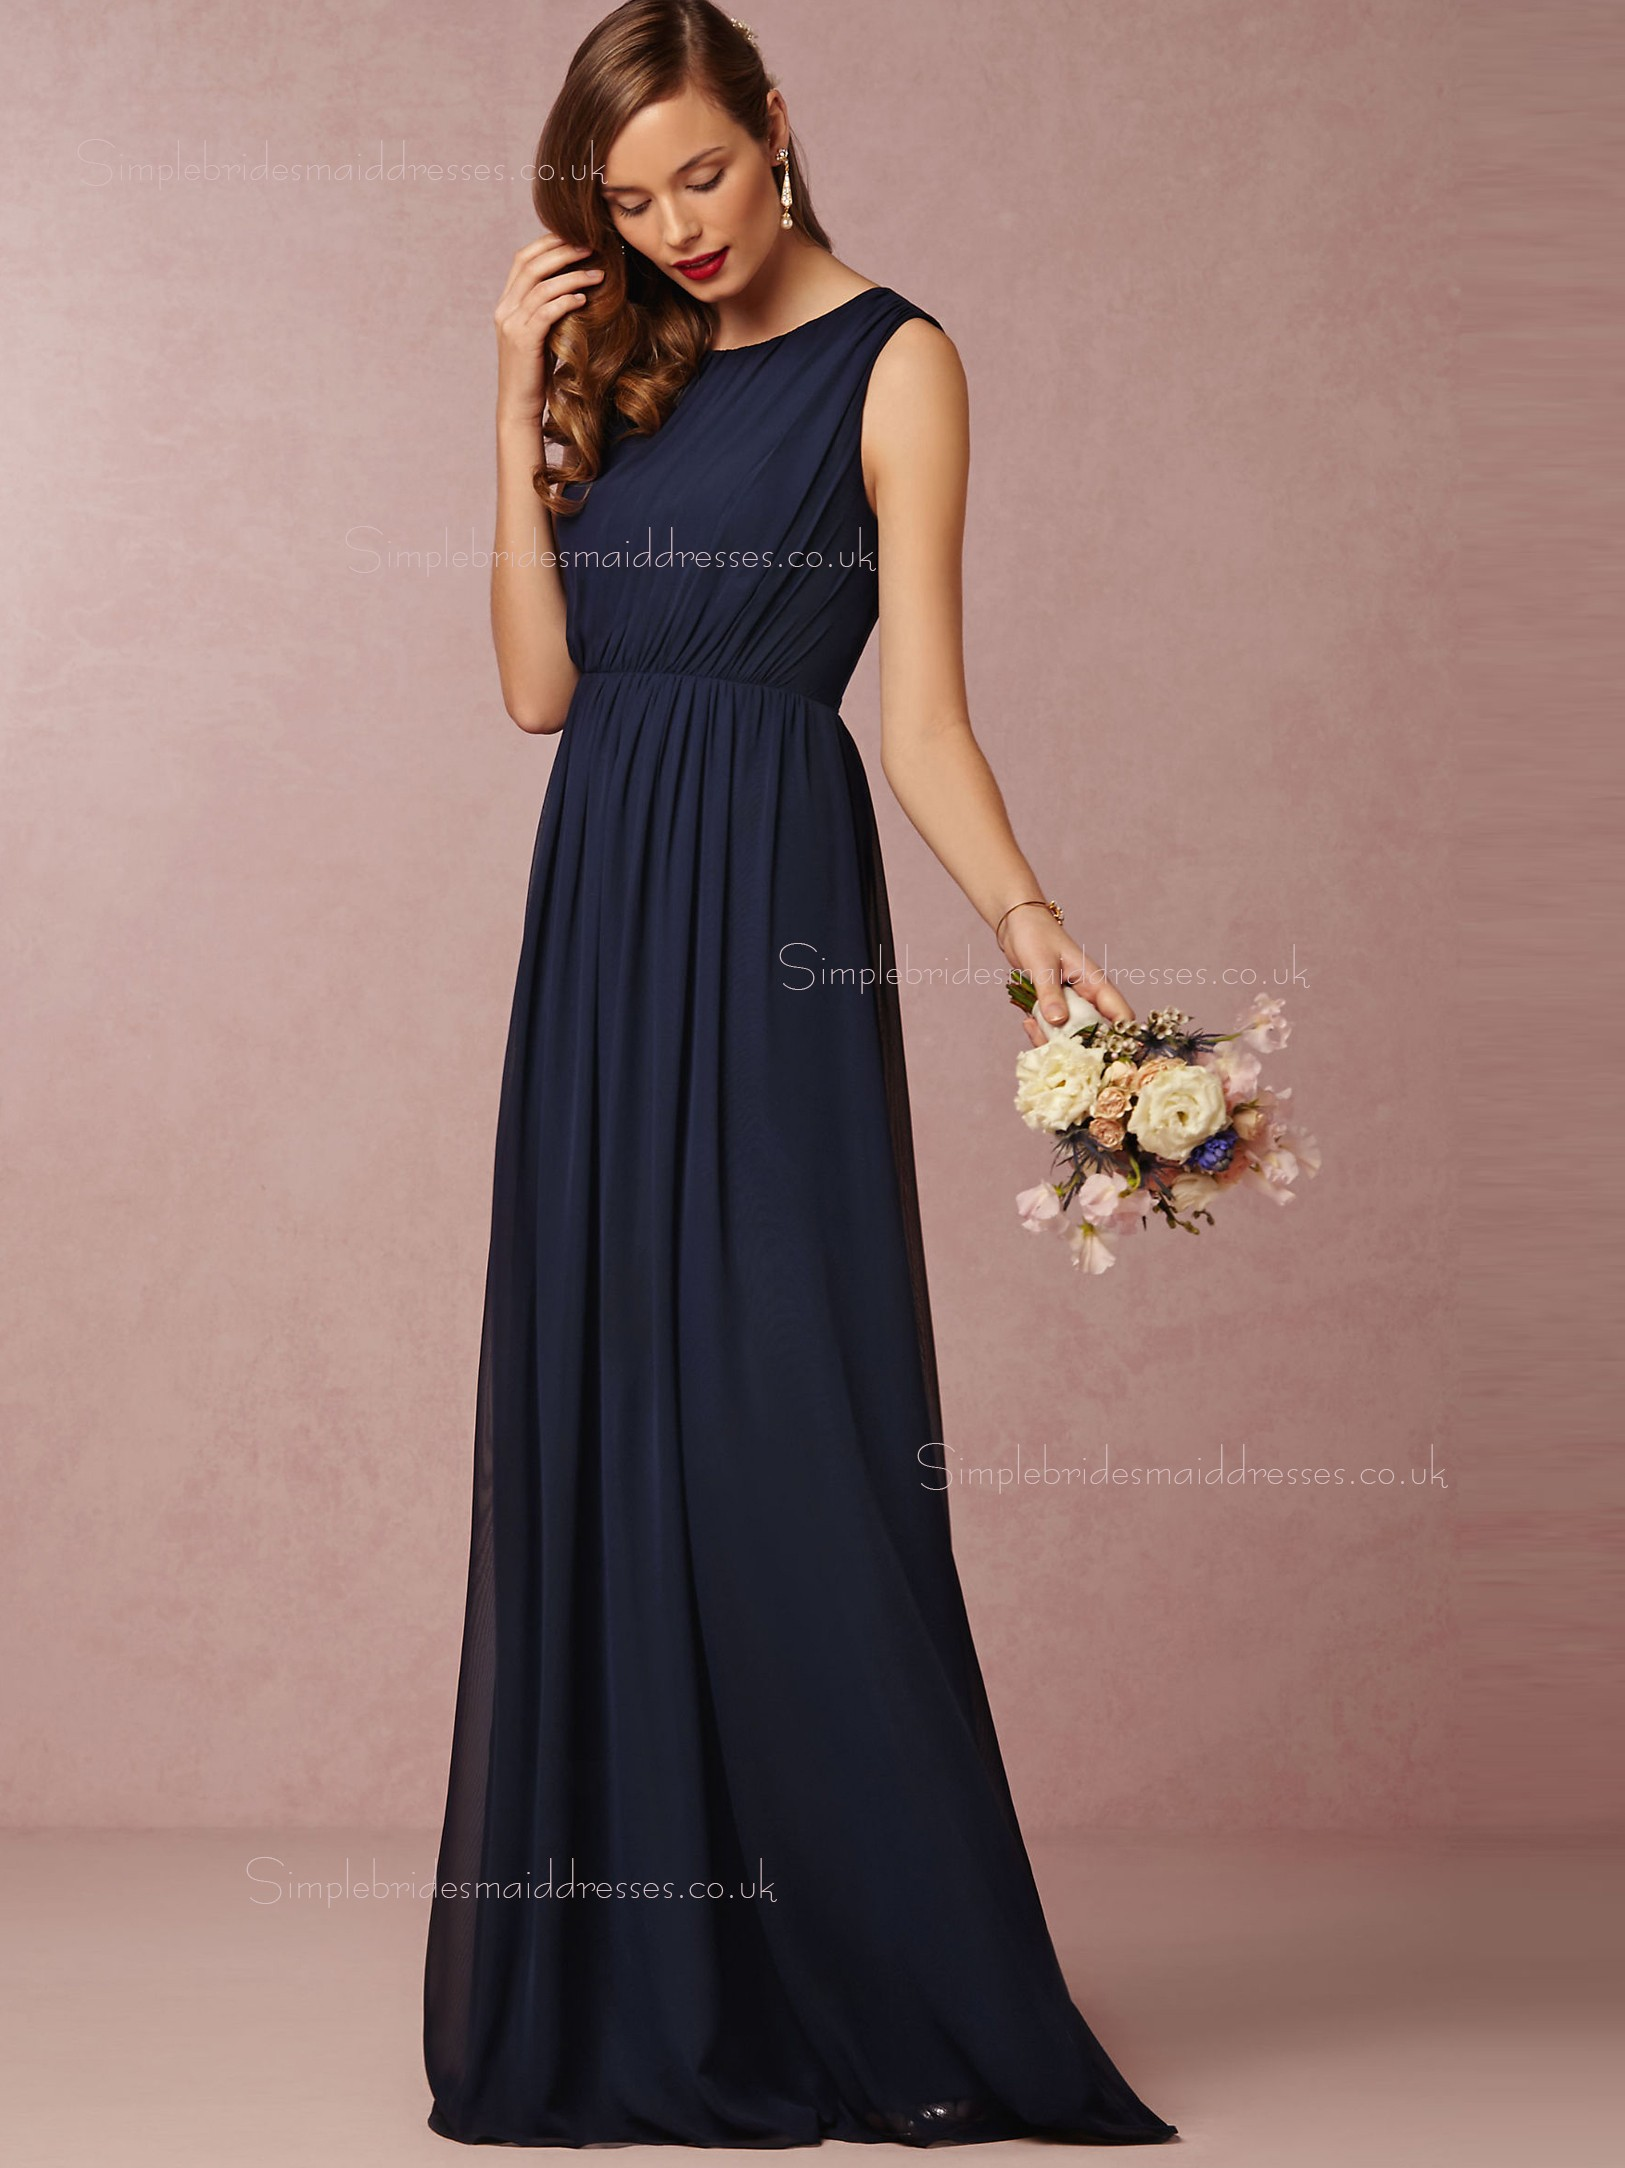 Cheap bridesmaid dresses in uk fashion dresses for Budget wedding dresses uk